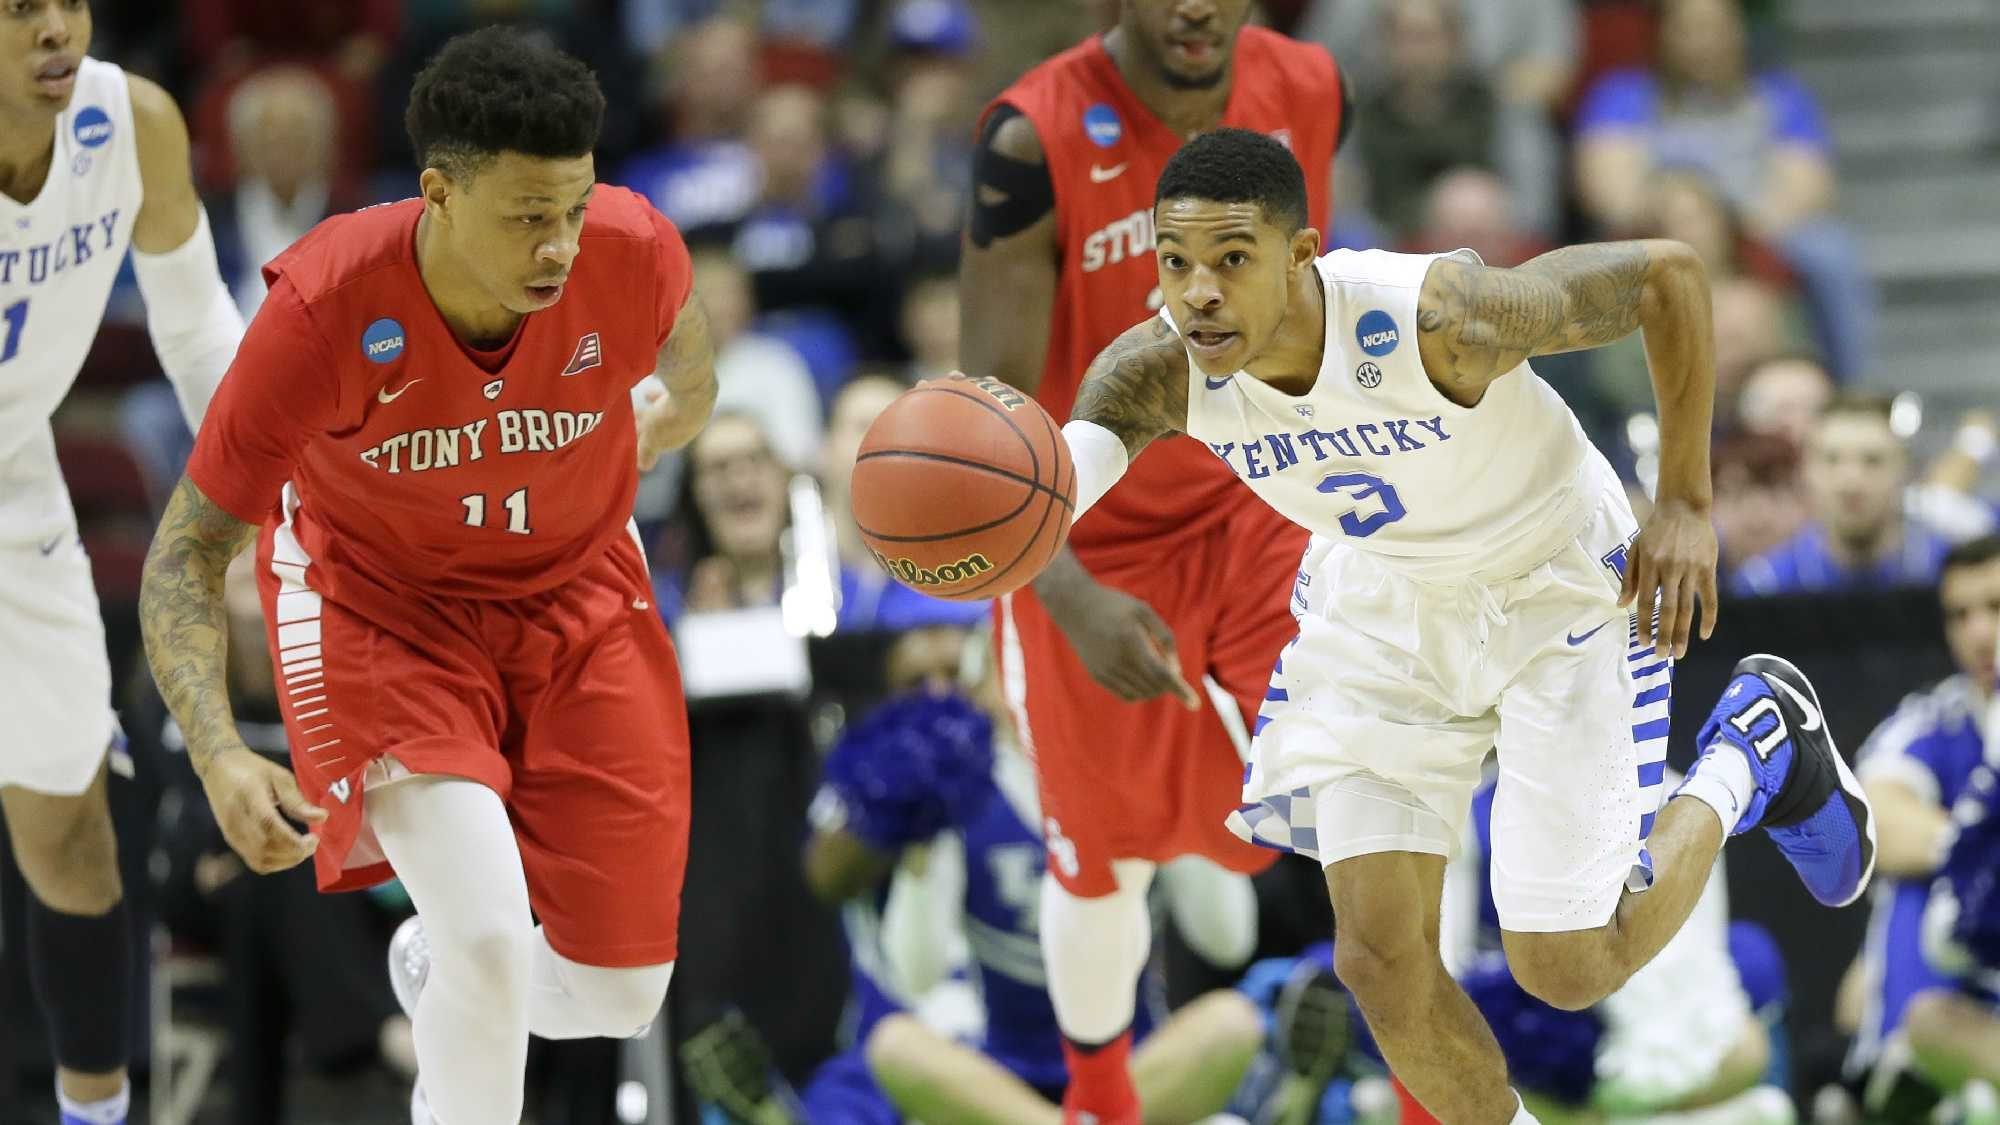 Kentucky guard Tyler Ulis drives upcourt past Stony Brook forward Rayshaun McGrew, left, during the first half of a first-round men's college basketball game in the NCAA Tournament, Thursday, March 17, 2016, in Des Moines, Iowa.